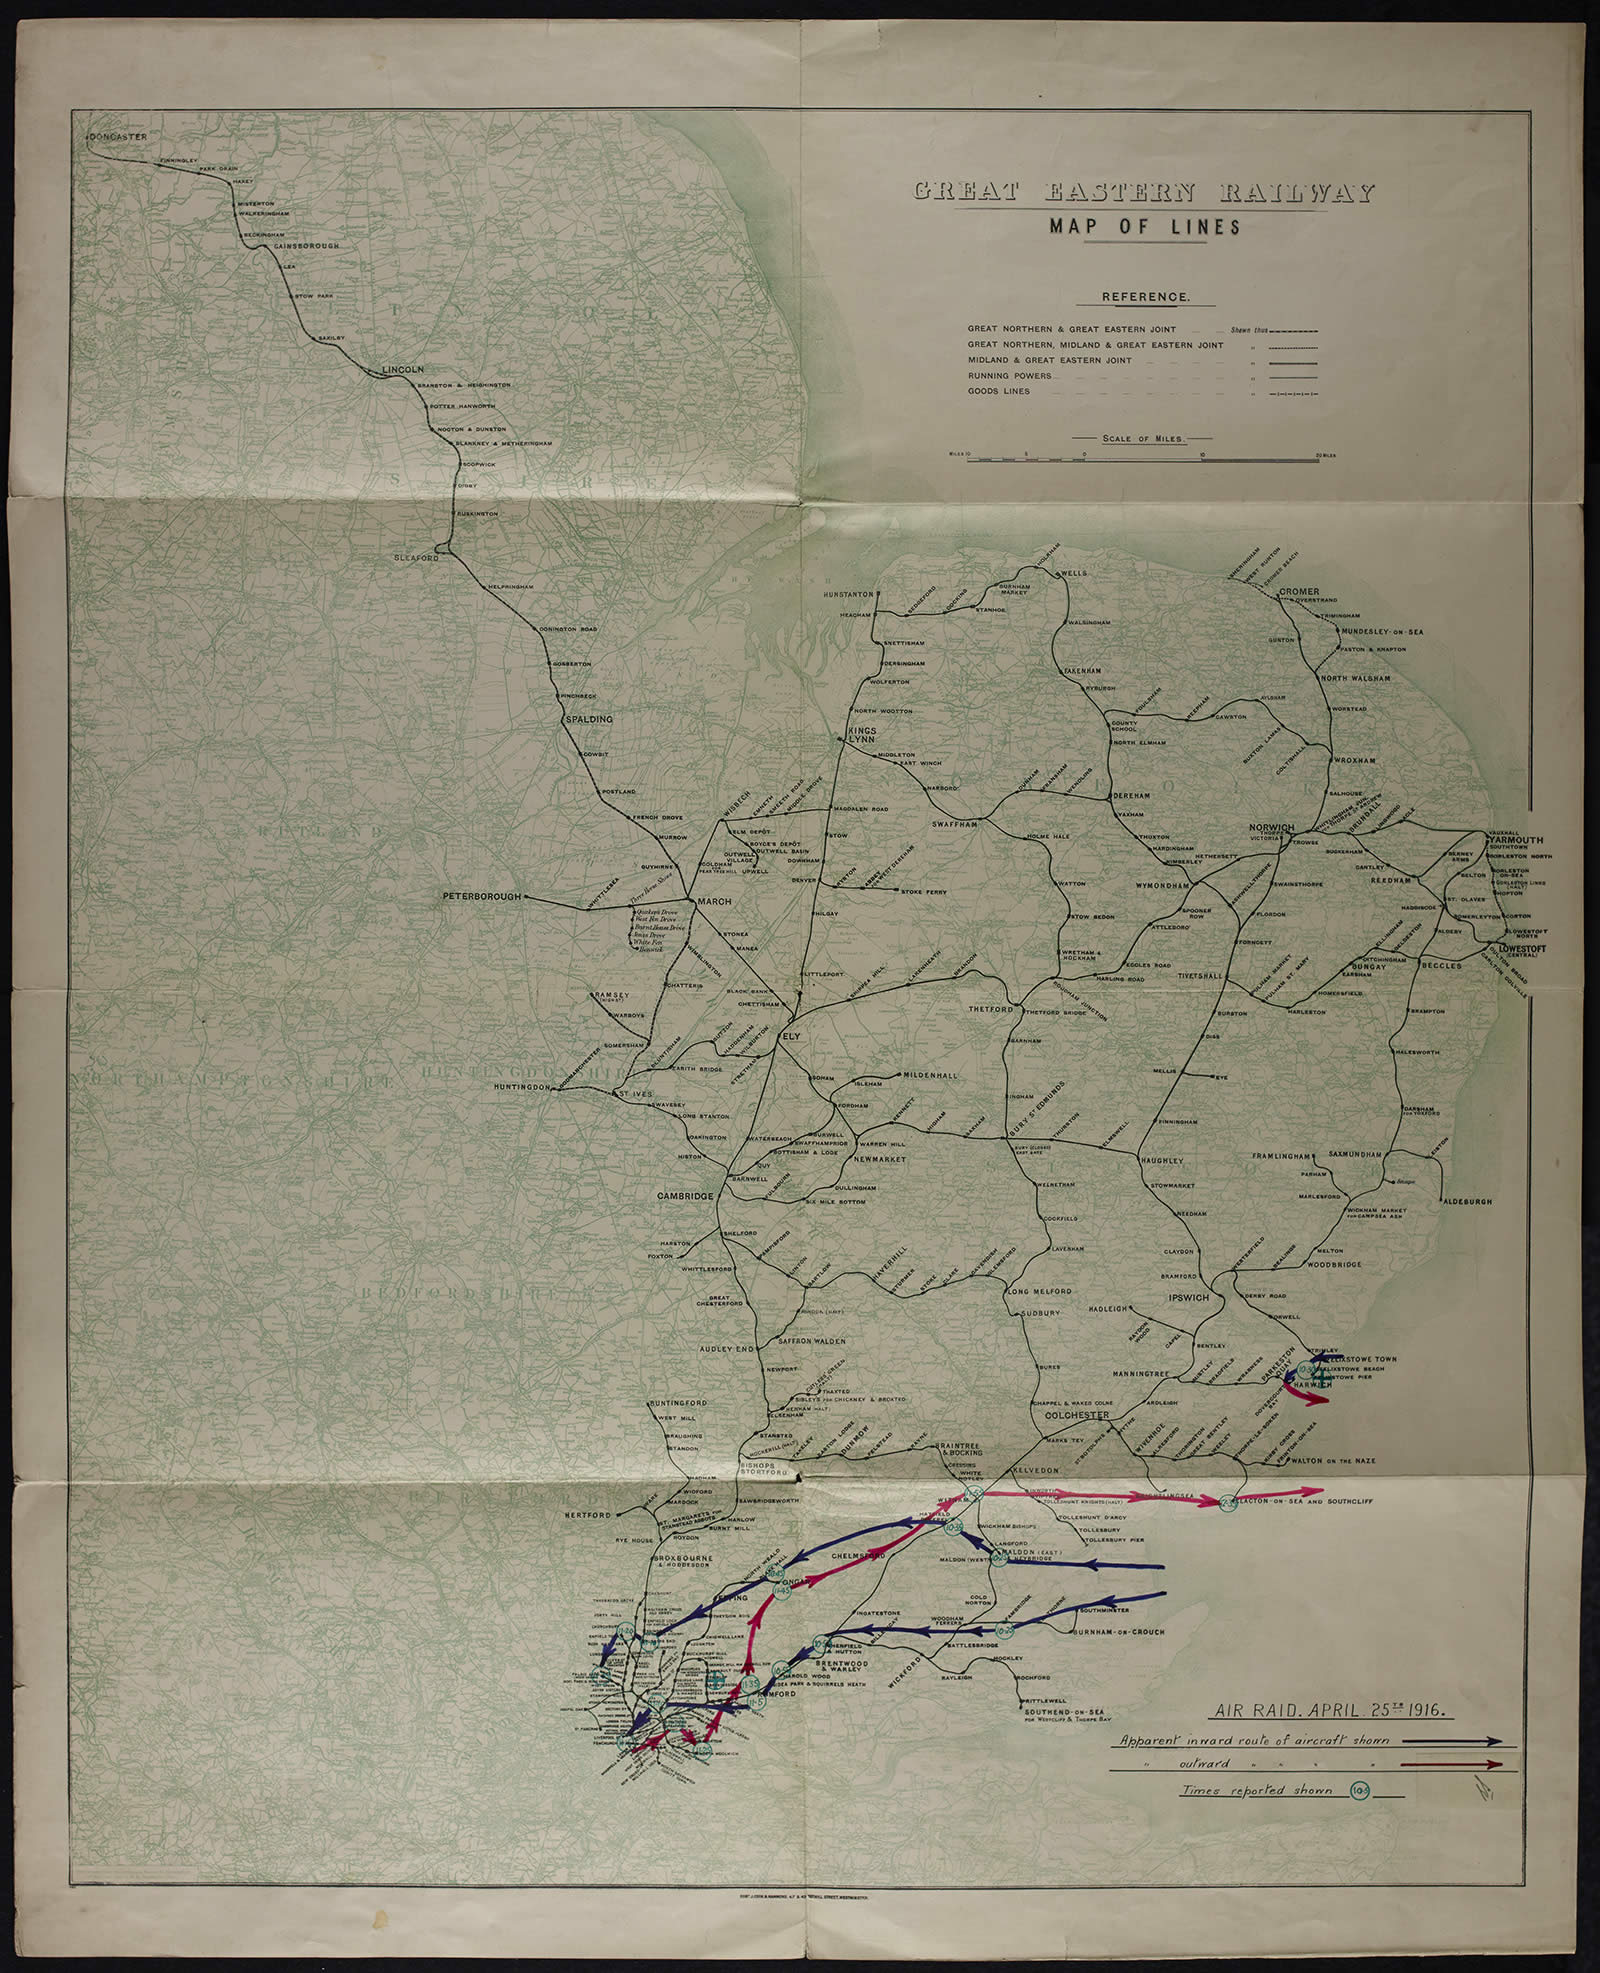 Image of a map of East Anglia, showing Great Eastern railway lines and the flight paths of enemy raiders on 25 April 1916